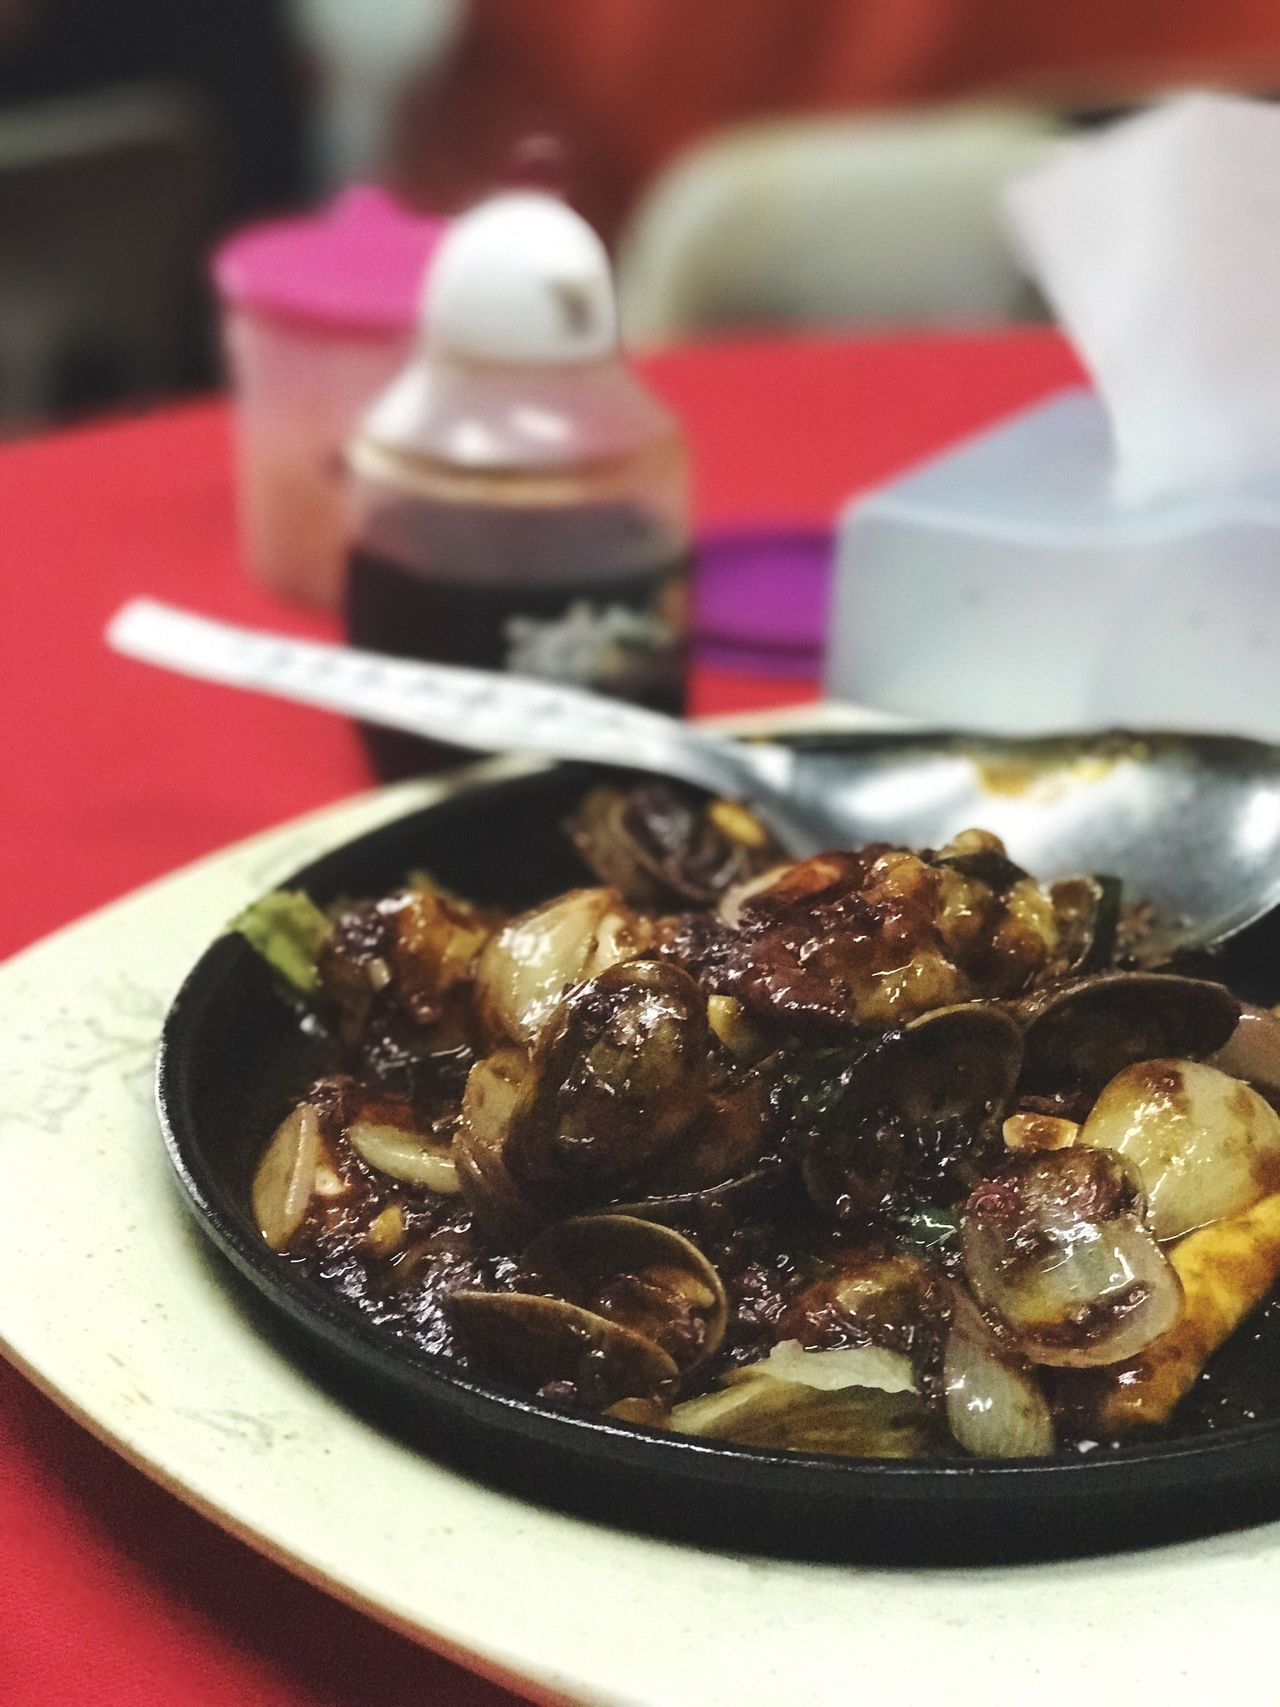 Seafoods Chinese Food Chinese Chinese Style Food And Drink Food Plate Ready-to-eat Serving Size Healthy Eating Table Indoors  Freshness No People Close-up Focus On Foreground Bowl Meal Gourmet Day Sotong Lala Shrimps Spicy Food Spices